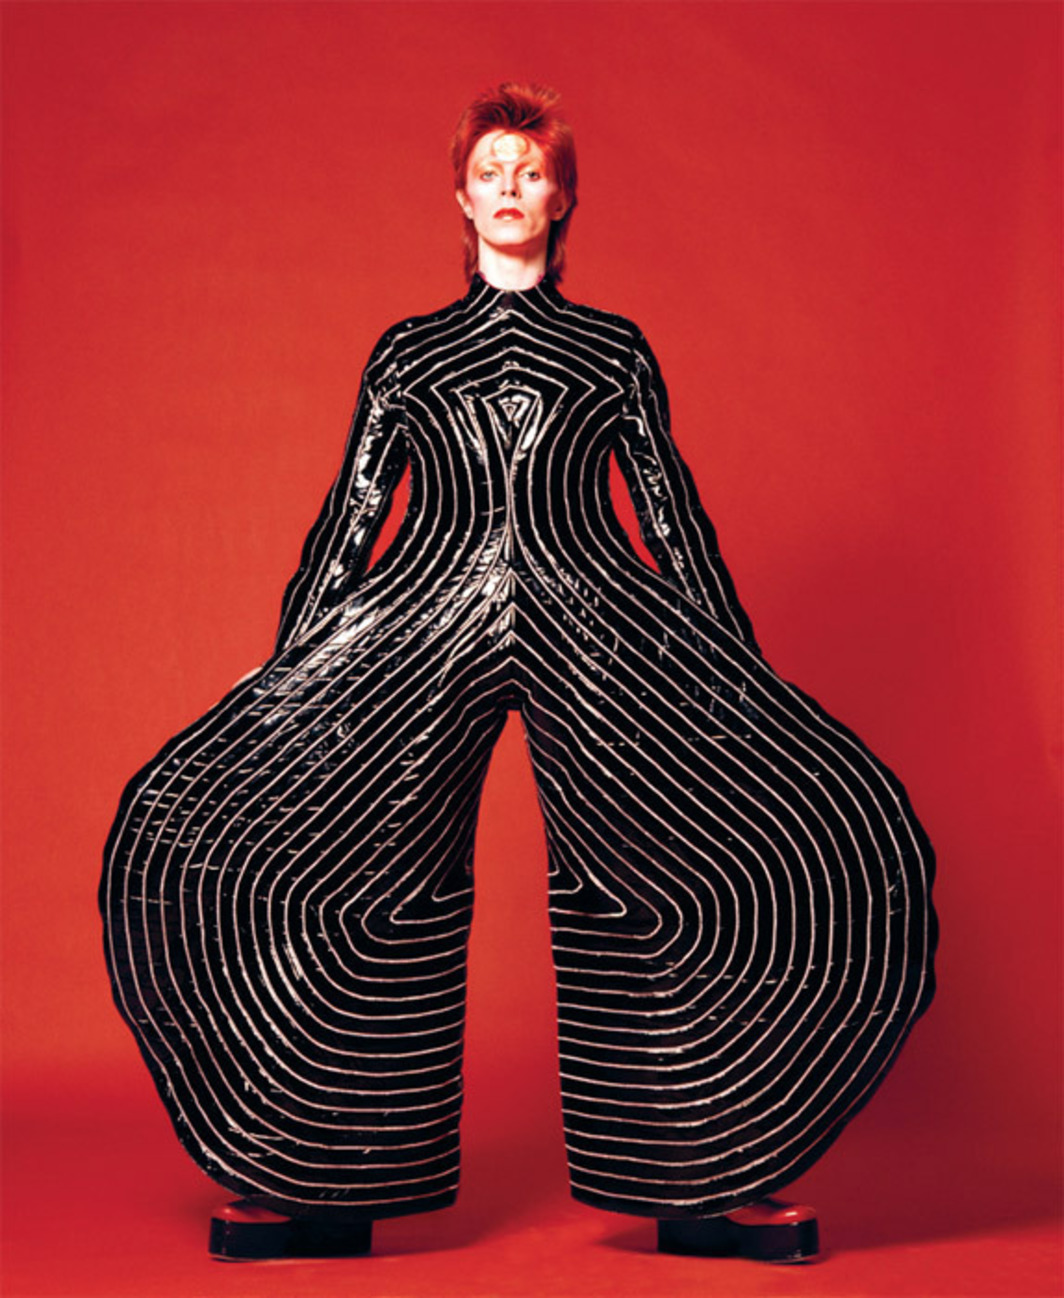 David Bowie wearing striped bodysuit designed by Kansai Yamamoto for the Aladdin Sane tour, 1973. Photo: Masayoshi Sukita.